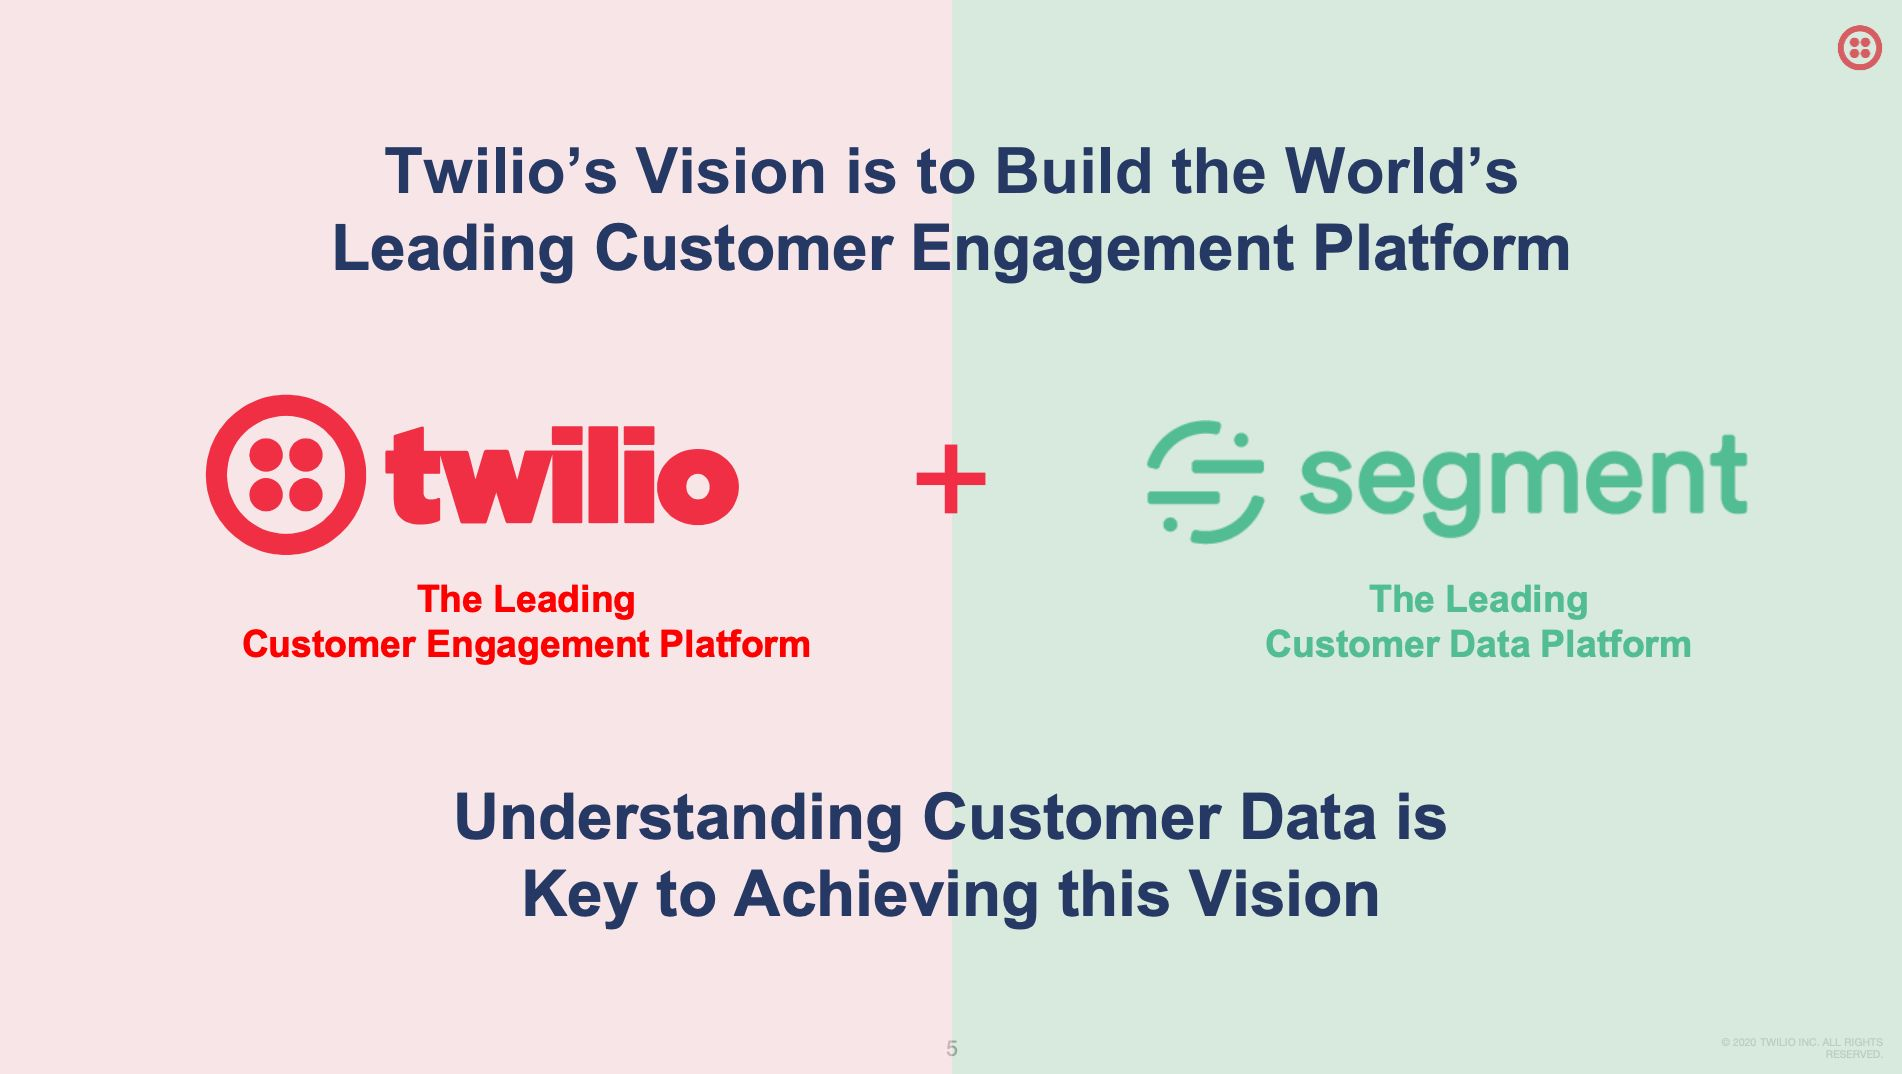 /why-did-twilio-acquire-segment-for-dollar32-billion-to-better-understand-end-user-data-va4p3et2 feature image